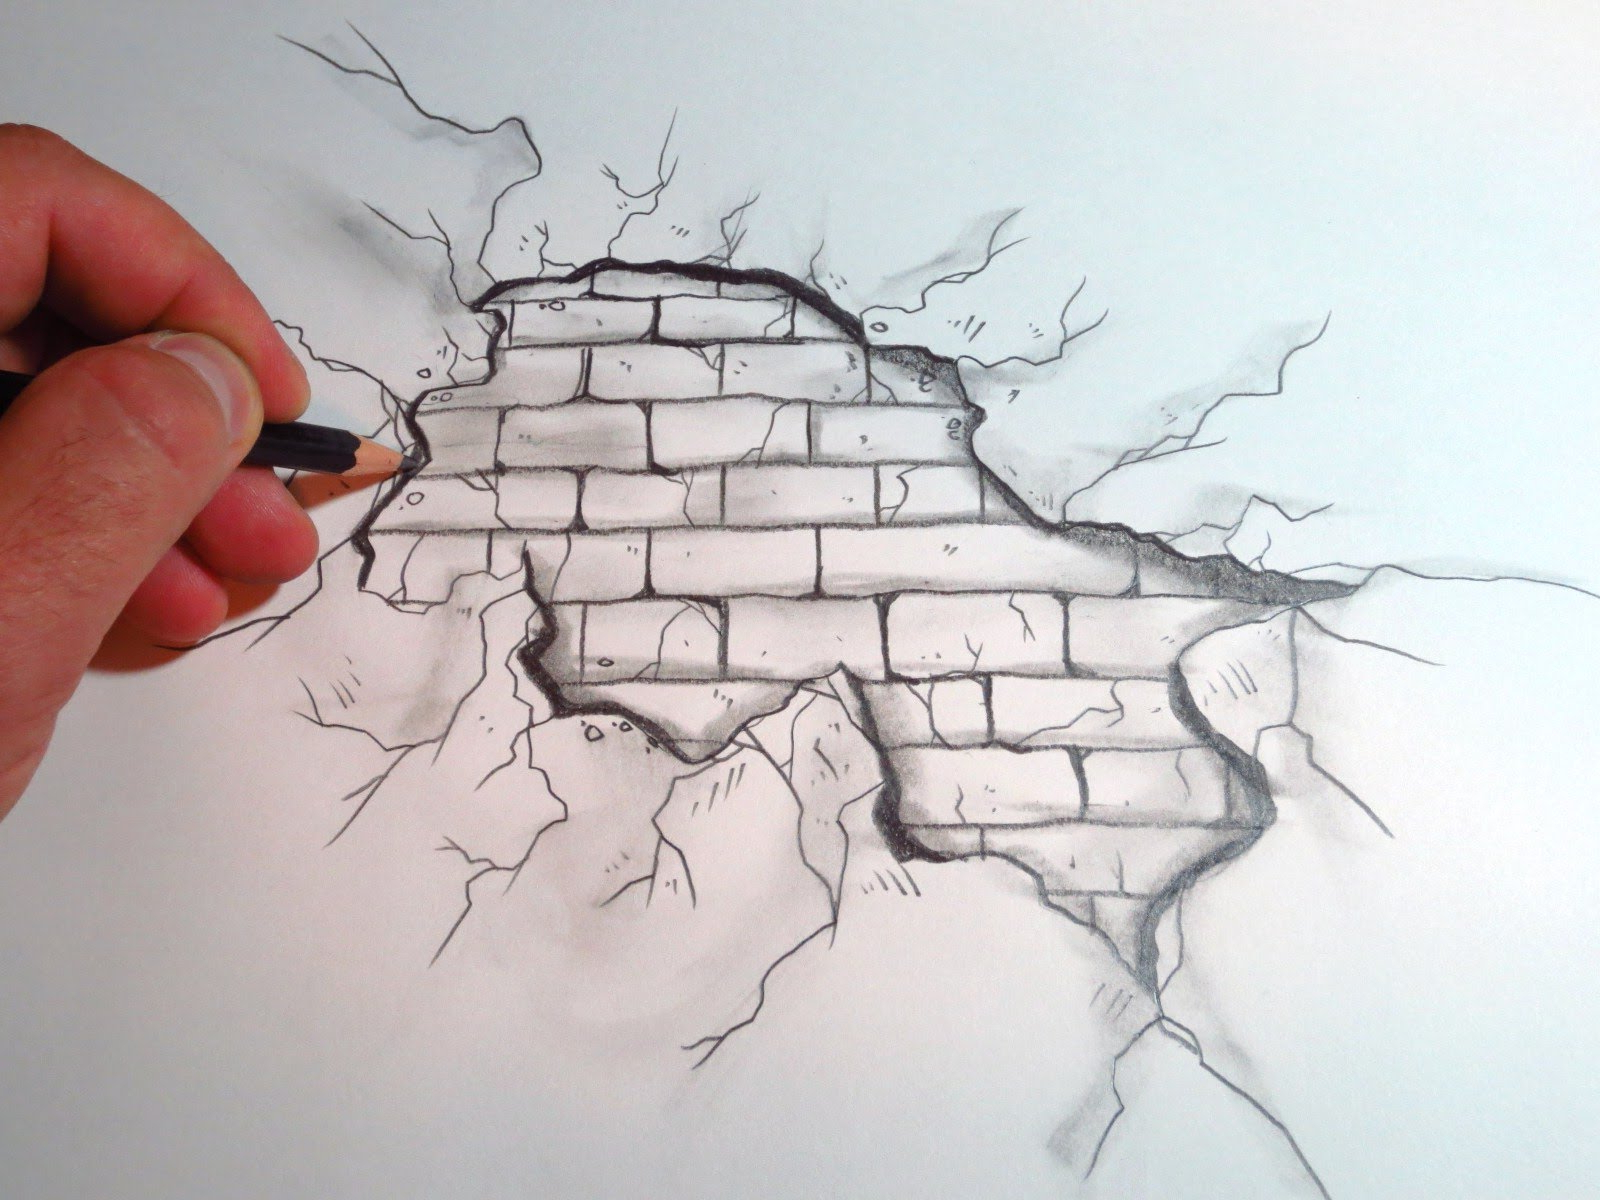 1600x1200 Wall 3d Pencil Drawings How To Draw A Cracked Brick Wall (The